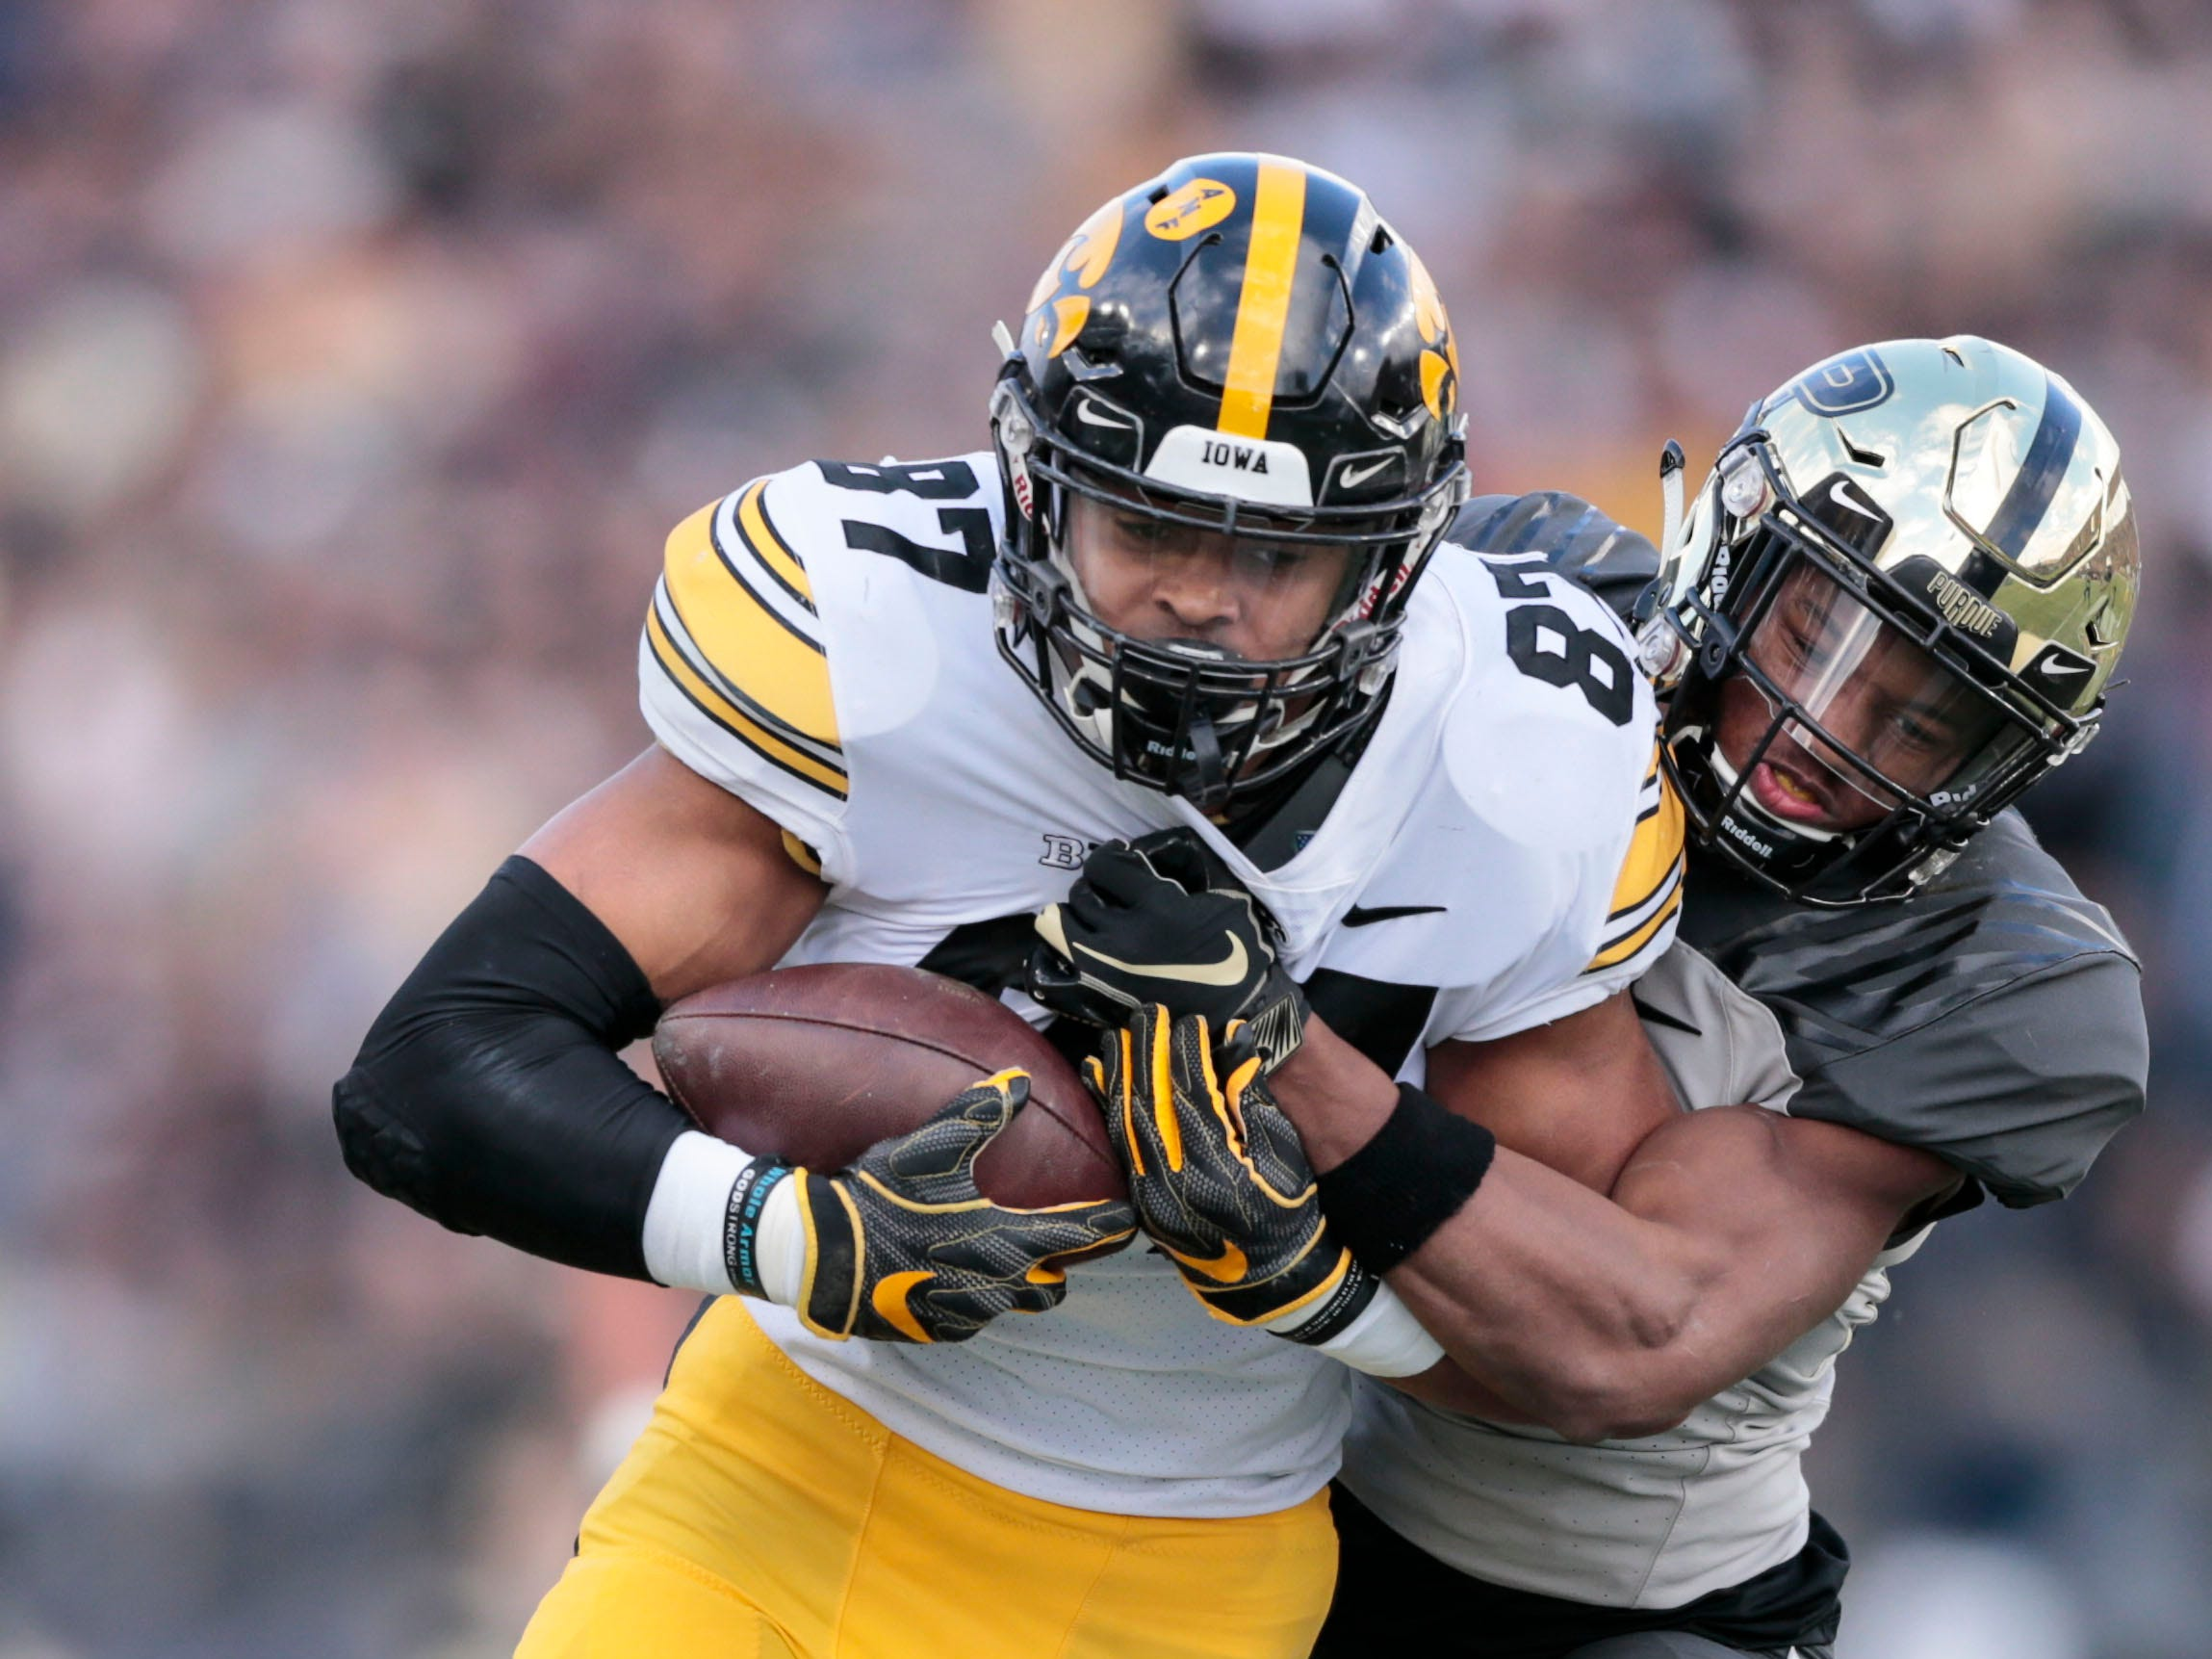 Iowa tight end Noah Fant, left, is tackled by Purdue safety Navon Mosley in the first half of an NCAA college football game in West Lafayette, Ind., Saturday, Nov. 3, 2018.